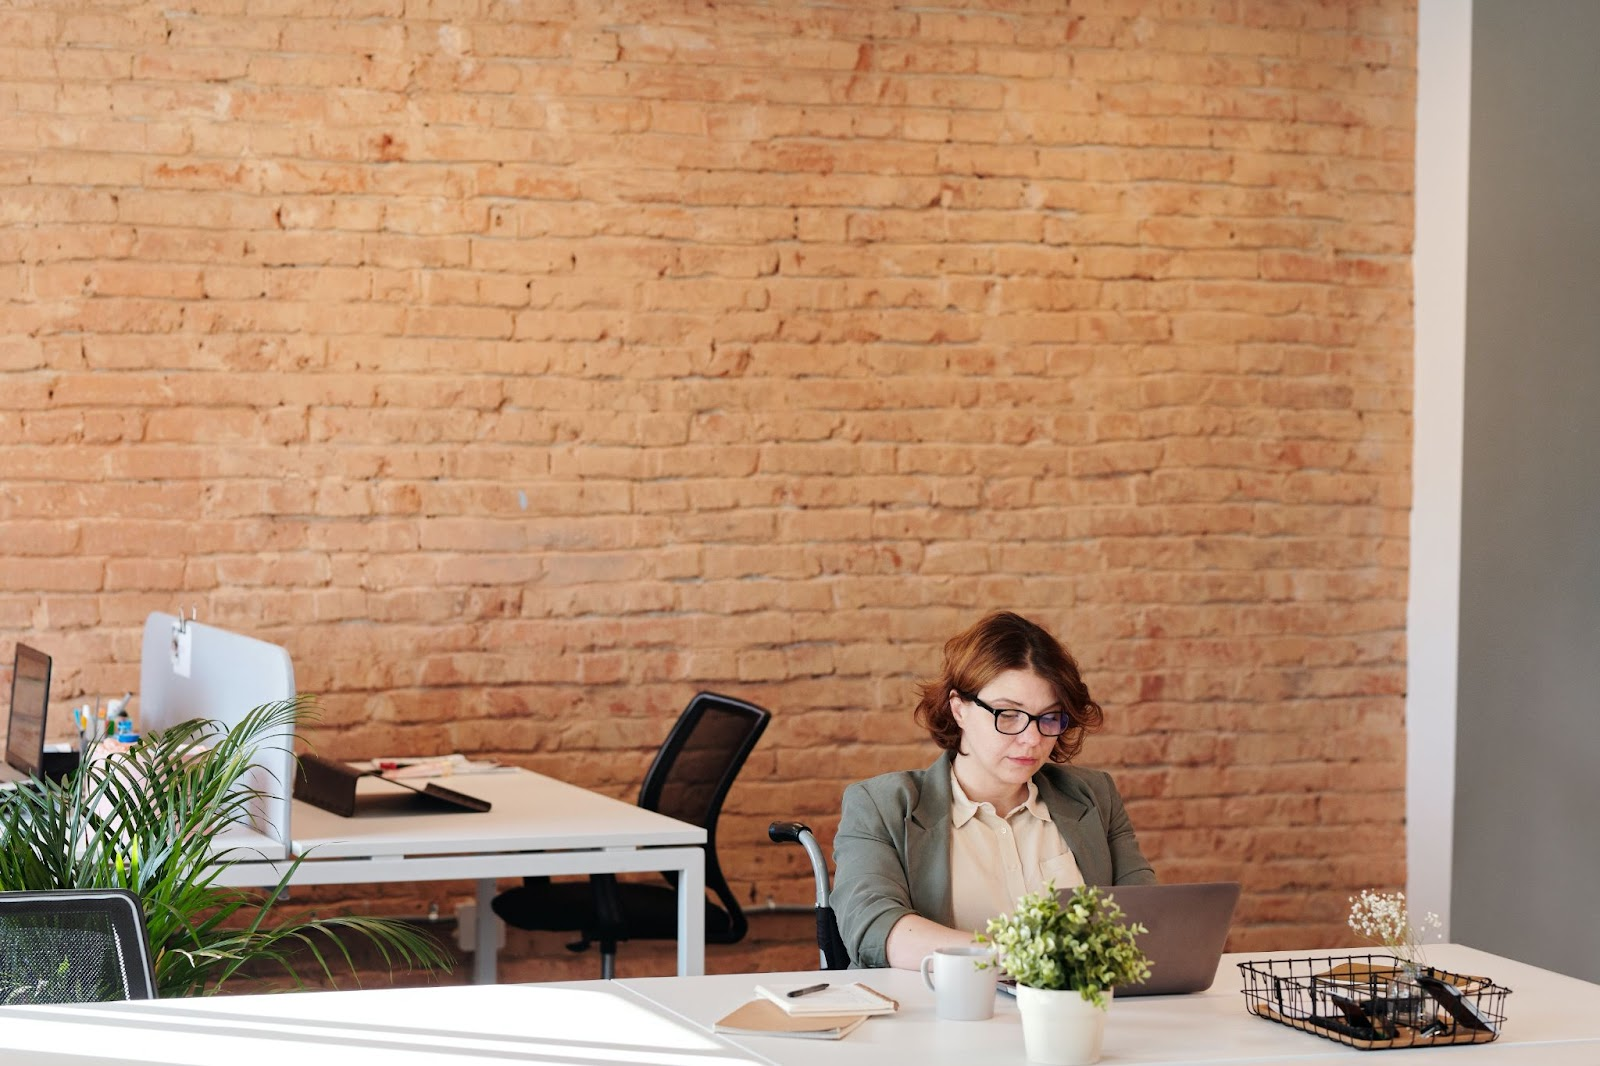 Benefits of Coworking in Singapore